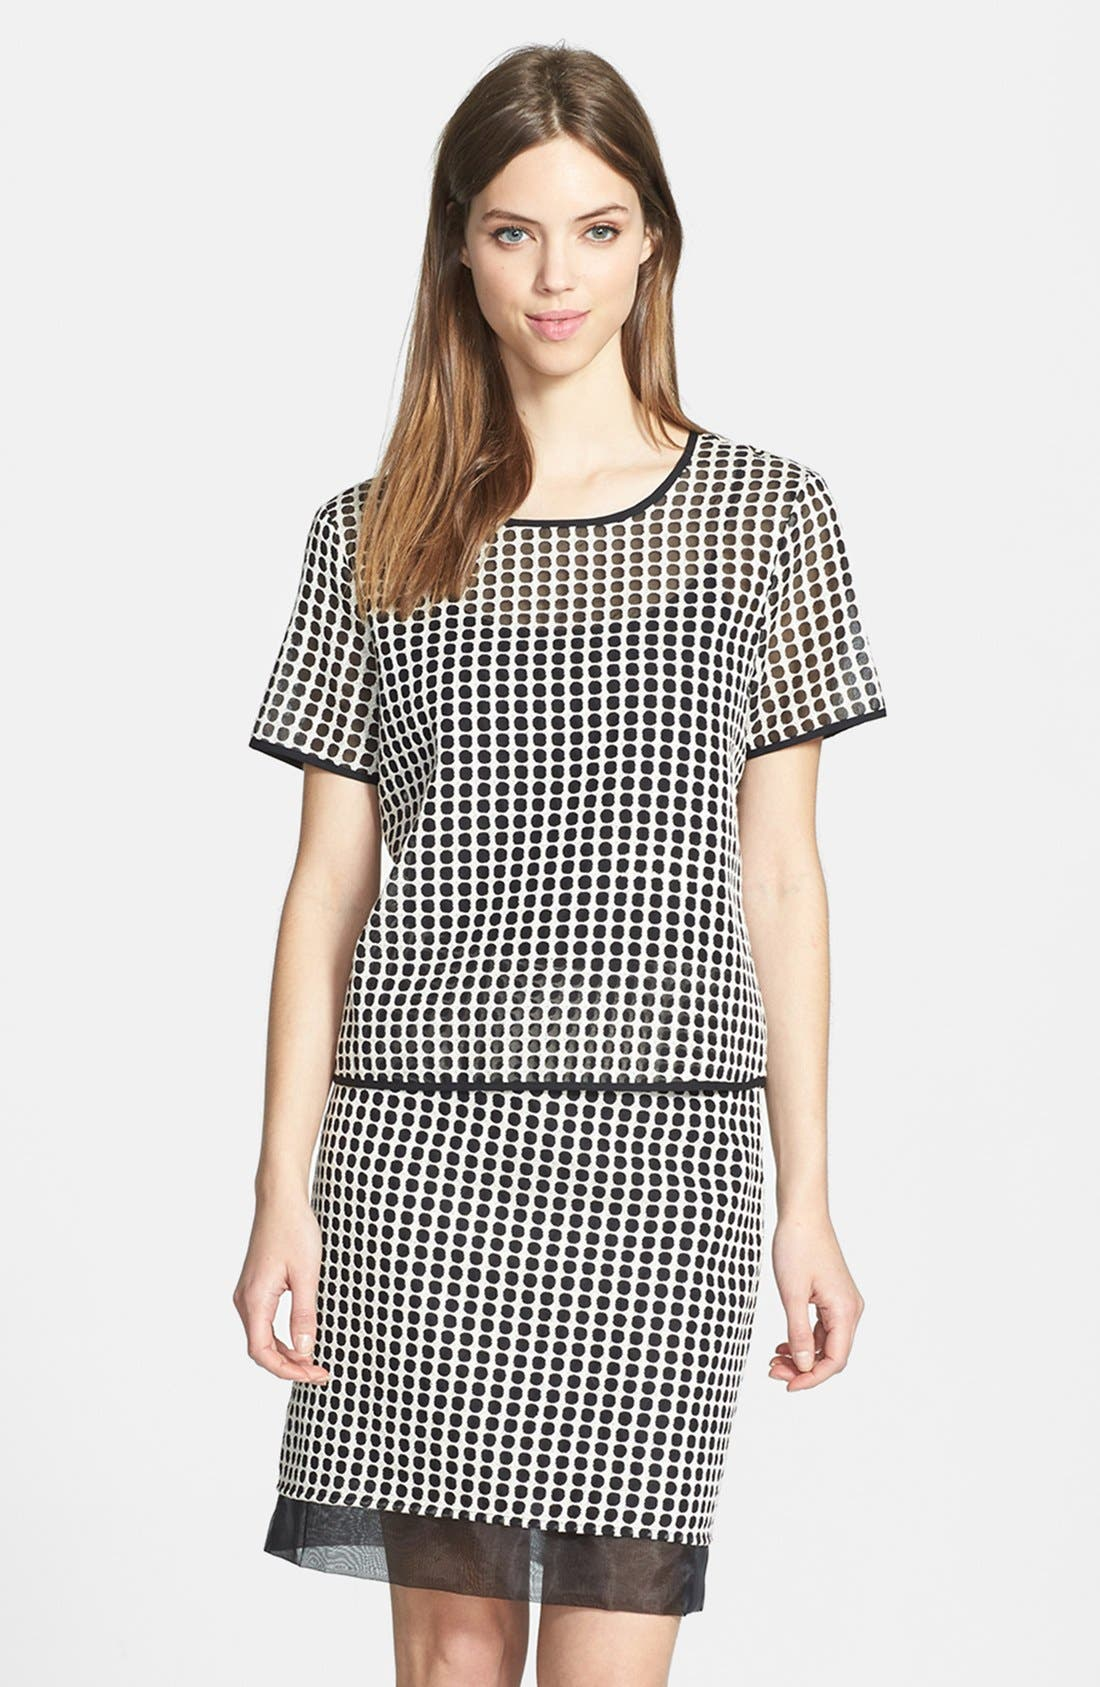 Alternate Image 1 Selected - Vince Camuto Two-Tone Dot Print Organza Blouse